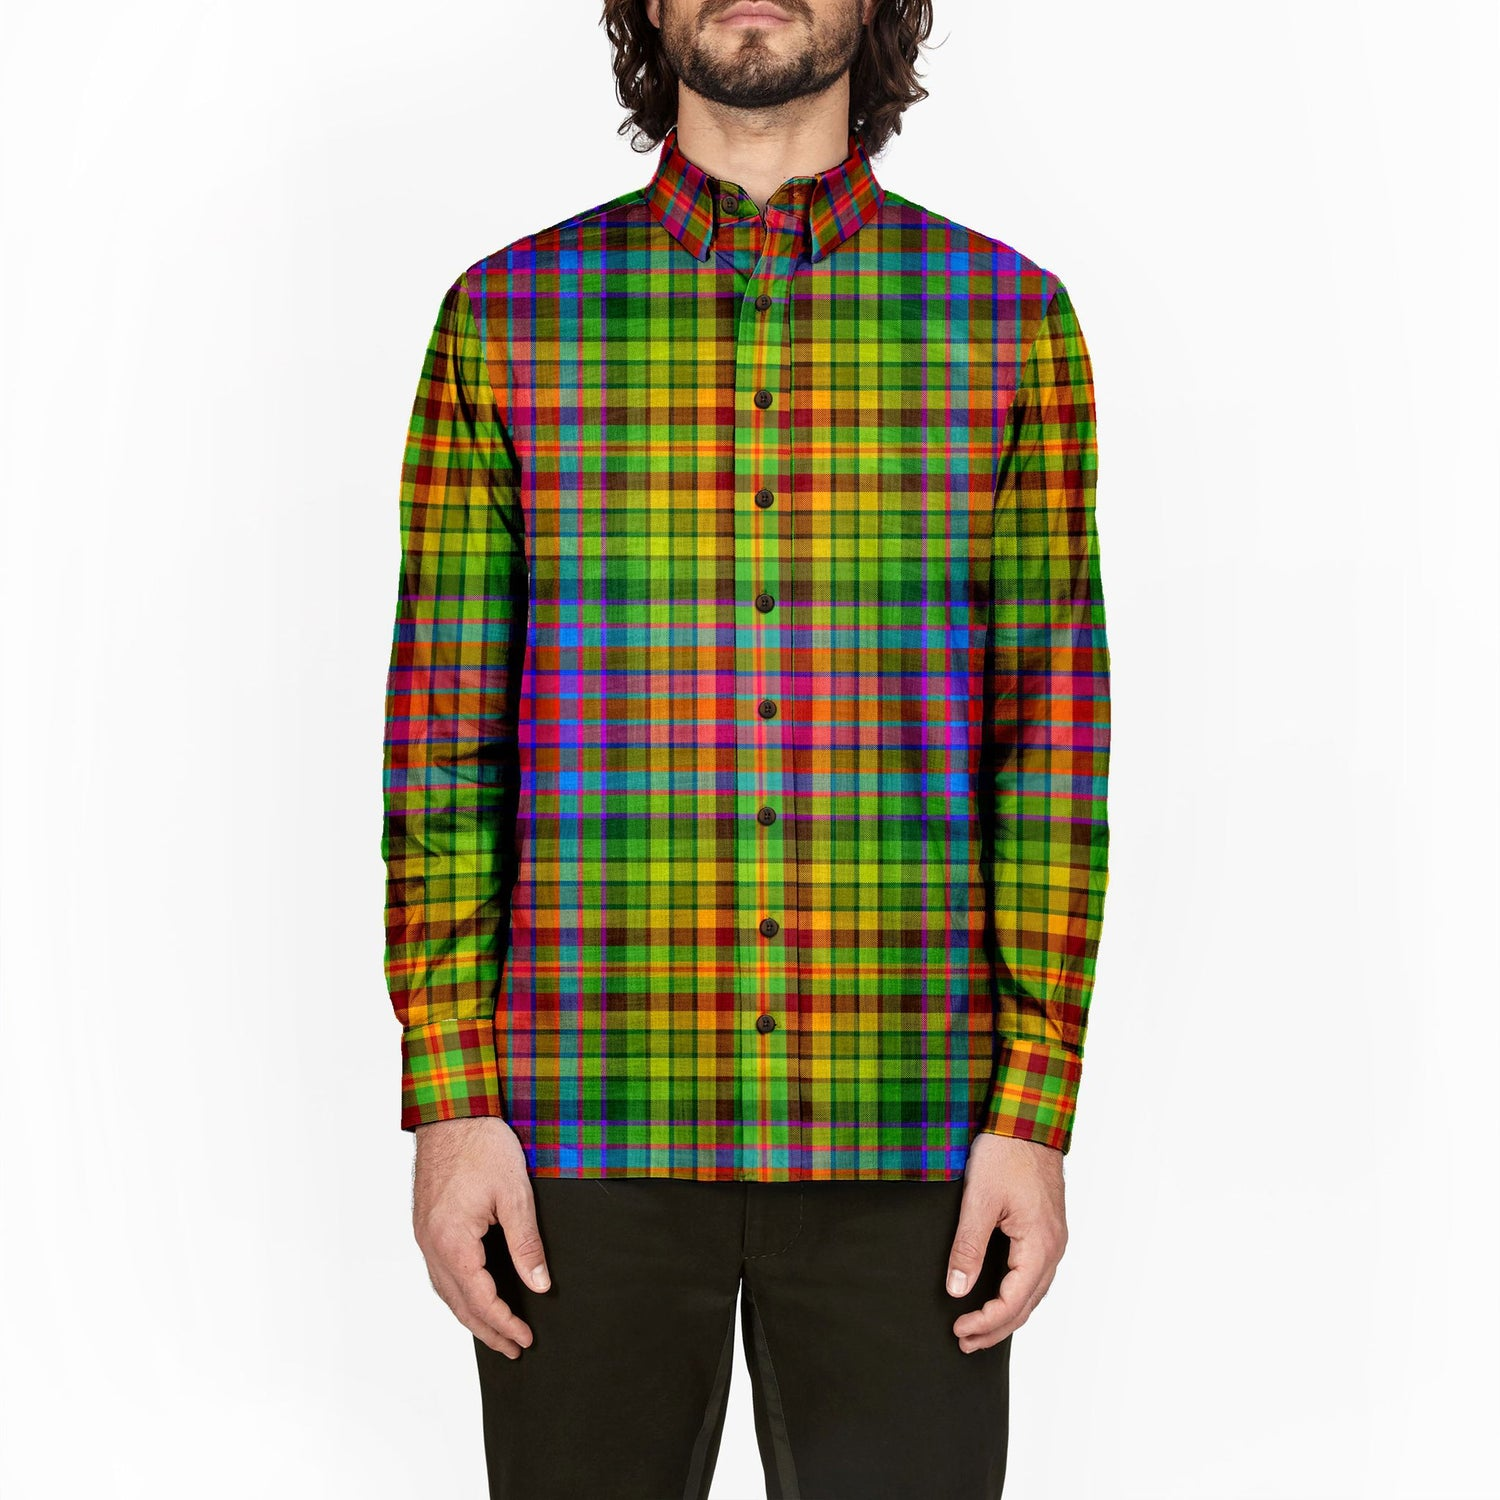 The Xmas Tree Plaid Flannel